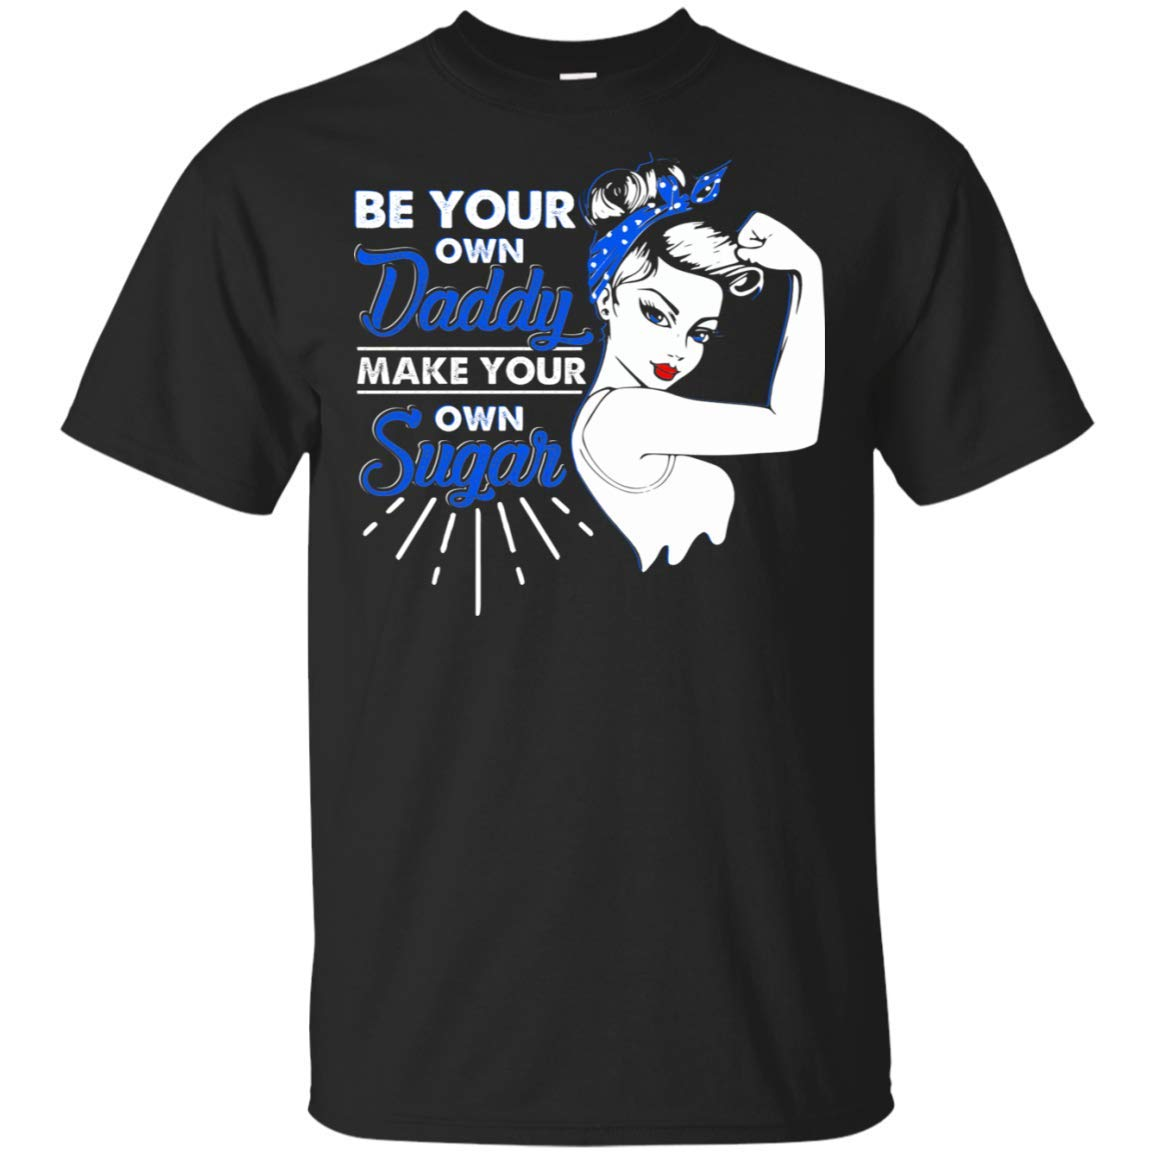 Be Your Own Daddy Make Your Own Sugar Strong Tshirt